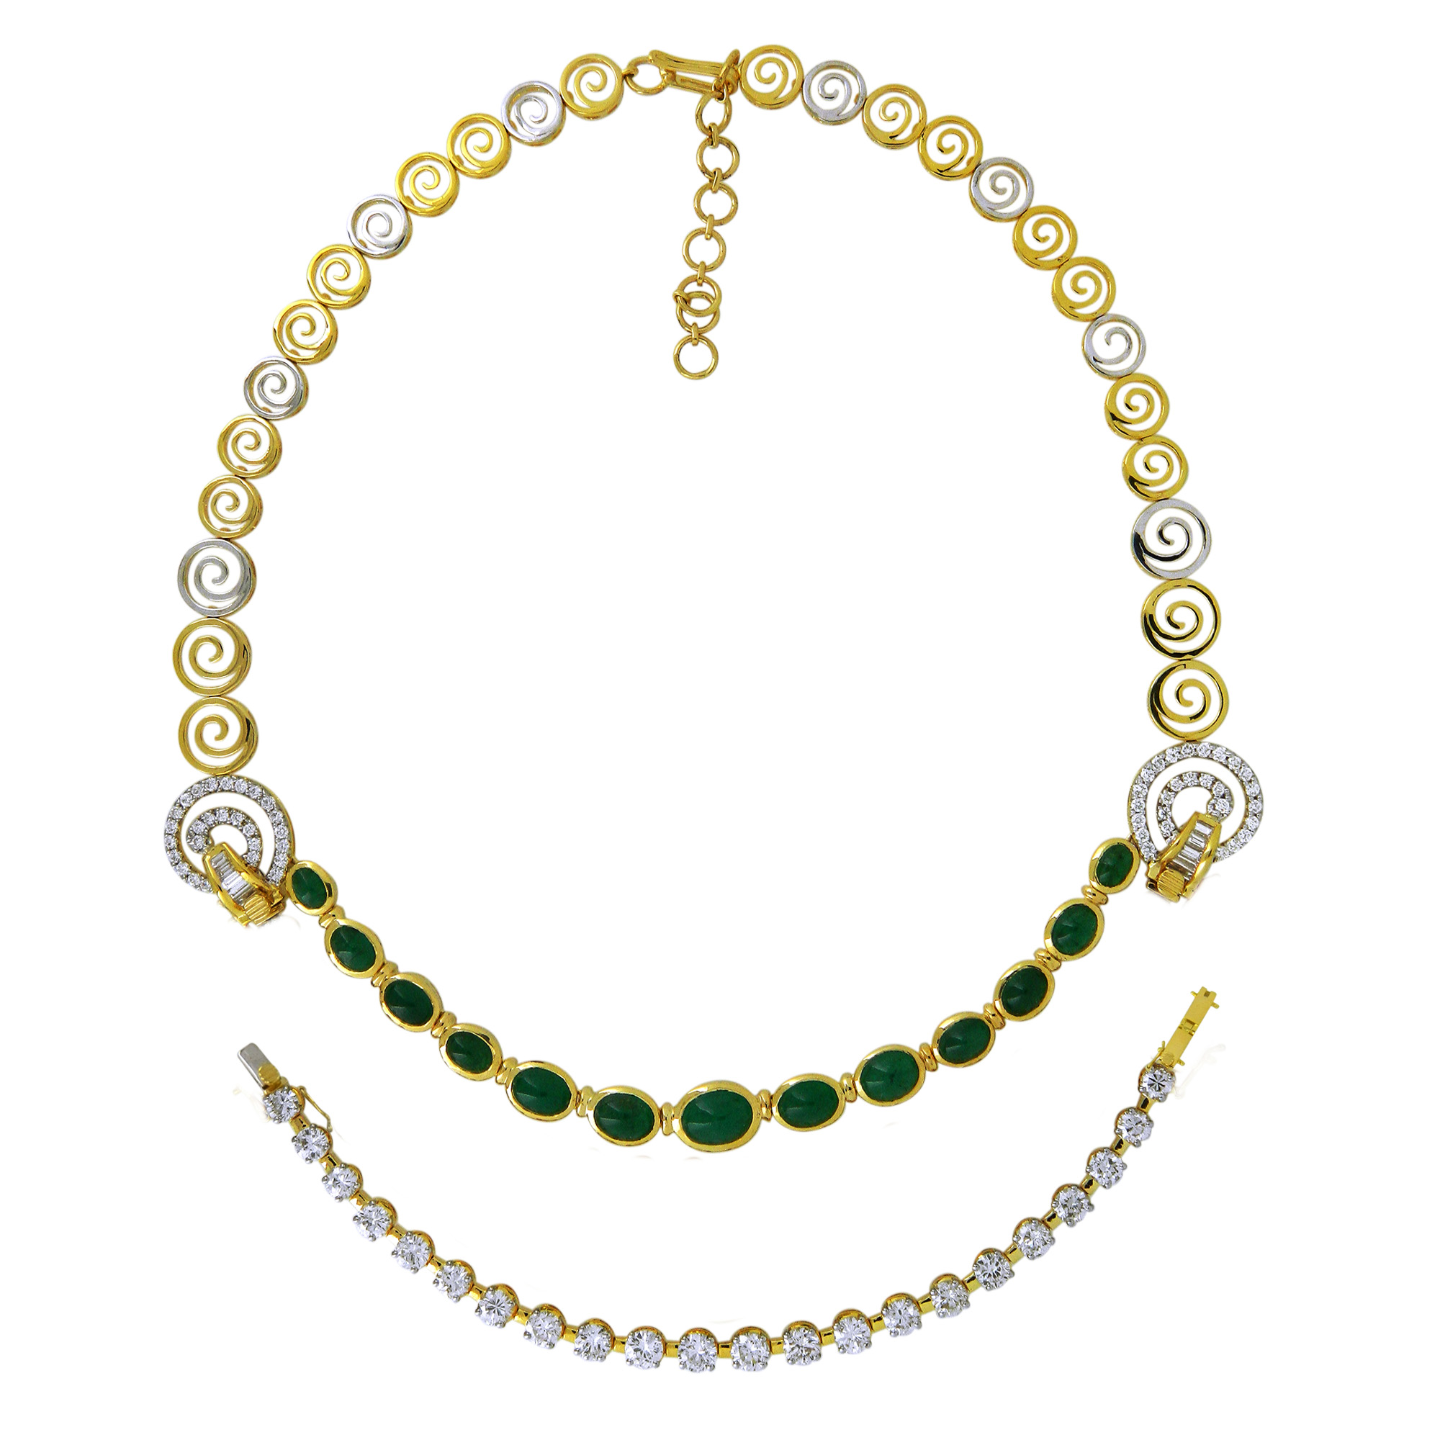 A Classic double line necklace with matching earrings in diamonds and emeralds